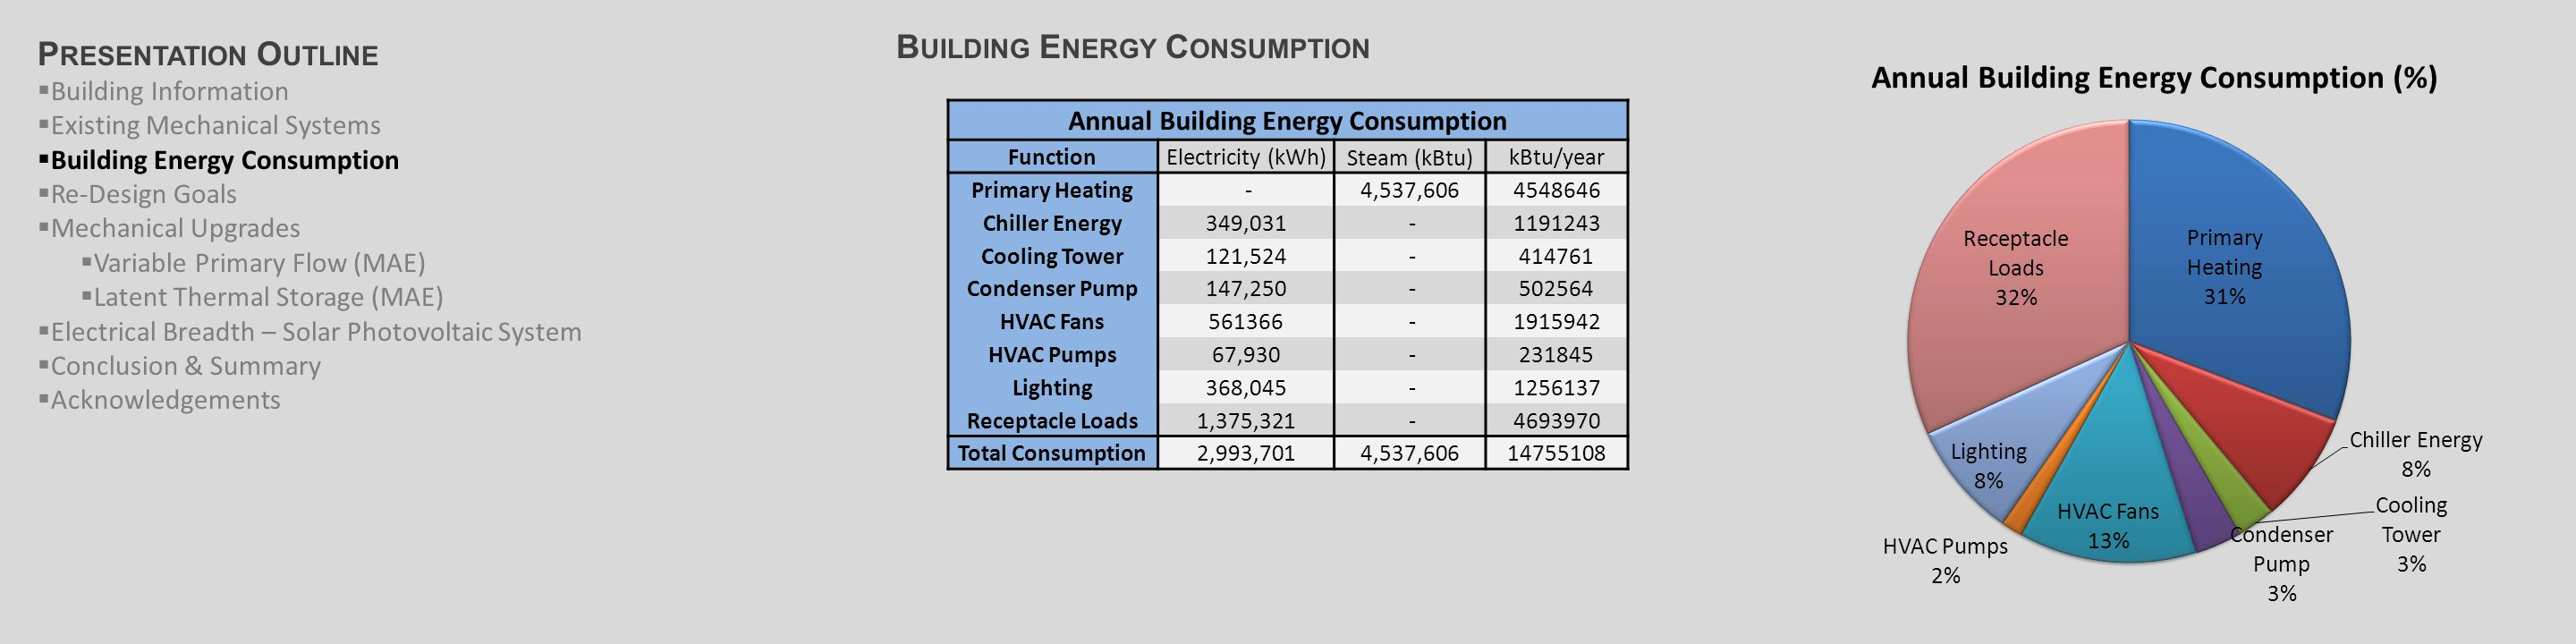 S UMMARY & C ONCLUSION Annual Emissions for Electrical Consumption Pollutant VPF Emissions Savings Per Year (lb) Solar PV Emissions Savings Per Year (lb) Latent Thermal Storage Increase per Year (lb) Electric Use 32245 kWh 99429 kWh189844 kWh CO 2e 56106173006330329 CO 2 52881163064311344 CH 4 116357682 N2ON2O147 NO x 97298570 SO x 2768521627 CO2885162 TNMOC2714 Lead000 Mercury000 PM103918 Solid Waste66102038338918 P RESENTATION O UTLINE  Building Information  Existing Mechanical Systems  Building Energy Consumption  Re-Design Goals  Mechanical Upgrades  Variable Primary Flow (MAE)  Latent Thermal Storage (MAE)  Electrical Breadth – Solar Photovoltaic System  Conclusion & Summary  Acknowledgements  Variable Primary Flow System  Saves $1,554.00 Annually  Lower Capital Cost  30-Year LCC Reduction of $46,069.00  Decreases Electrical Consumption & Emissions  Latent Thermal Storage System  Saves $1404.51 Annually  Lower Capital Cost  30-Year LCC Reduction of $448,152.00  Increases Electrical Consumption & Emissions  Solar Photovoltaic System  5-Year Payback Period  15-Year LCC Return of $401,248.00  Decreases Electrical Consumption & Emissions